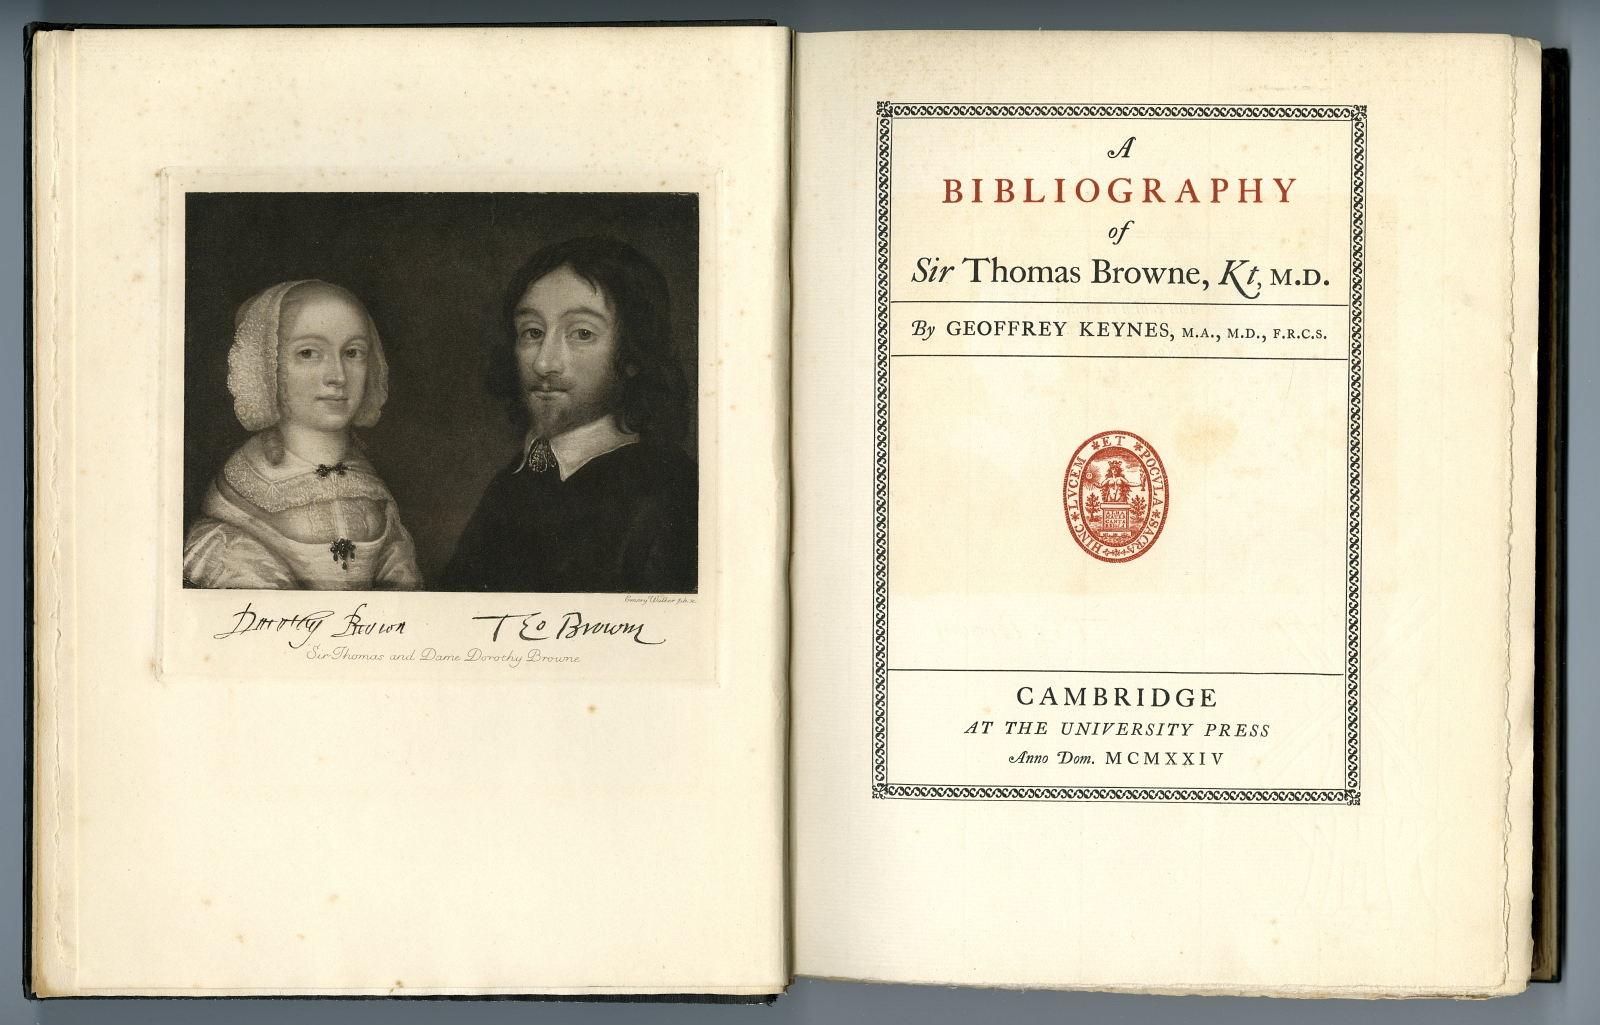 A BIBLIOGRAPHY OF SIR THOMAS BROWNE title